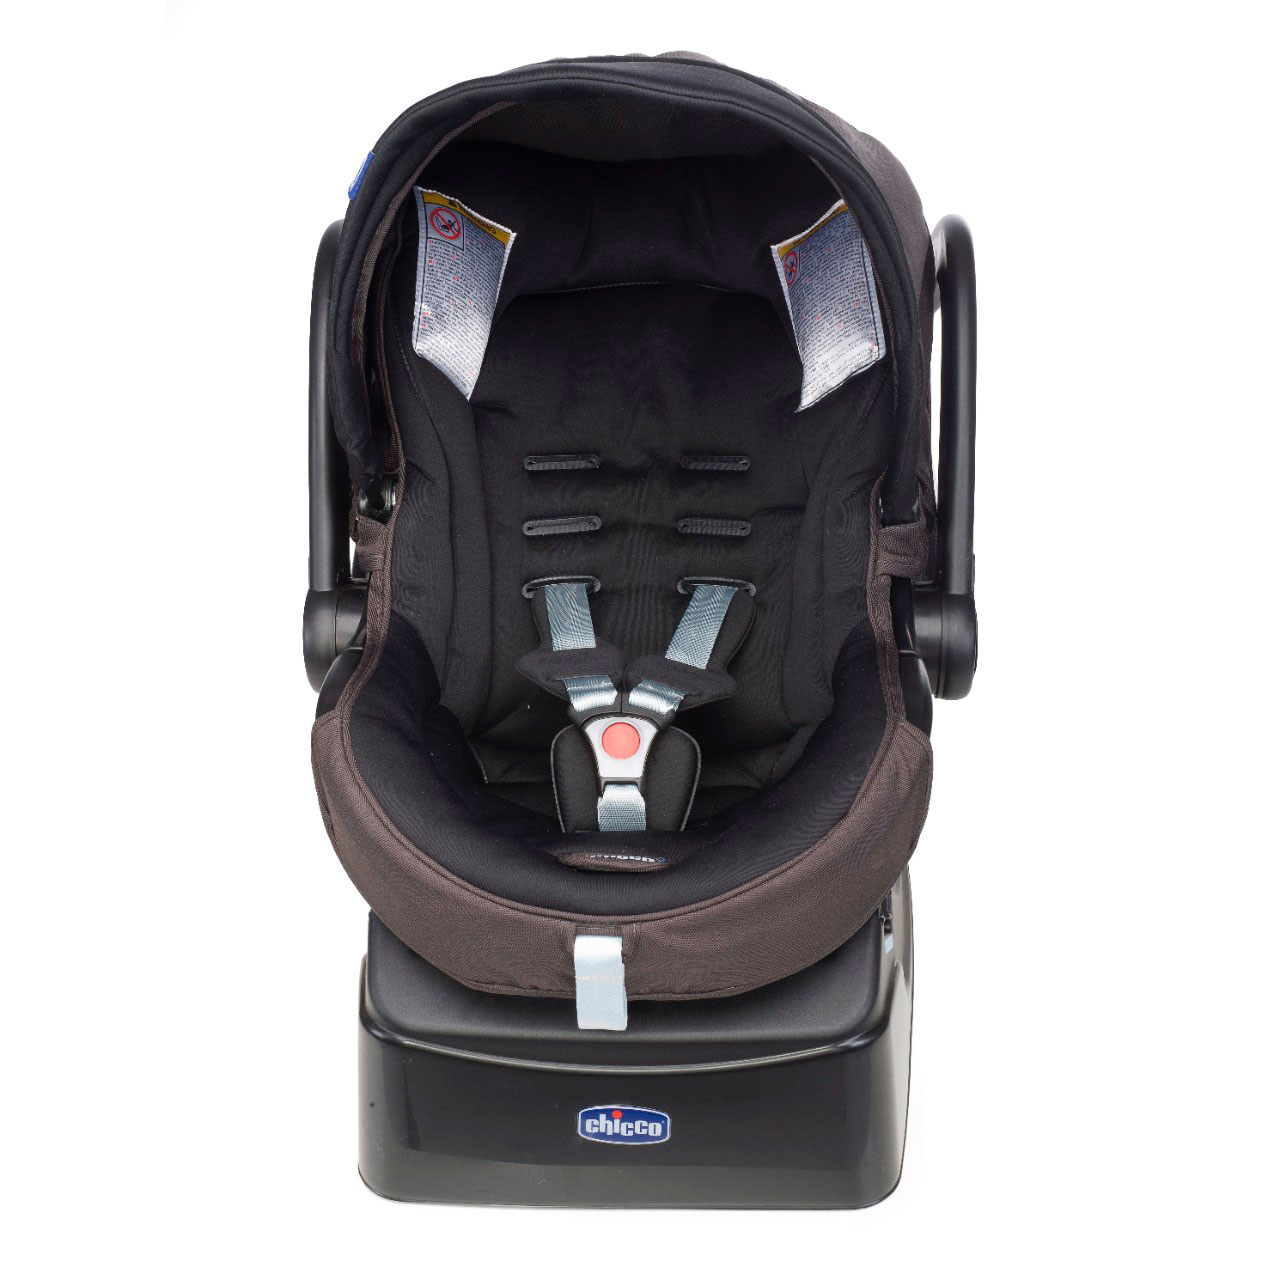 Автокресло Сhicco Auto-Fix Fast Baby Night (Chicco)